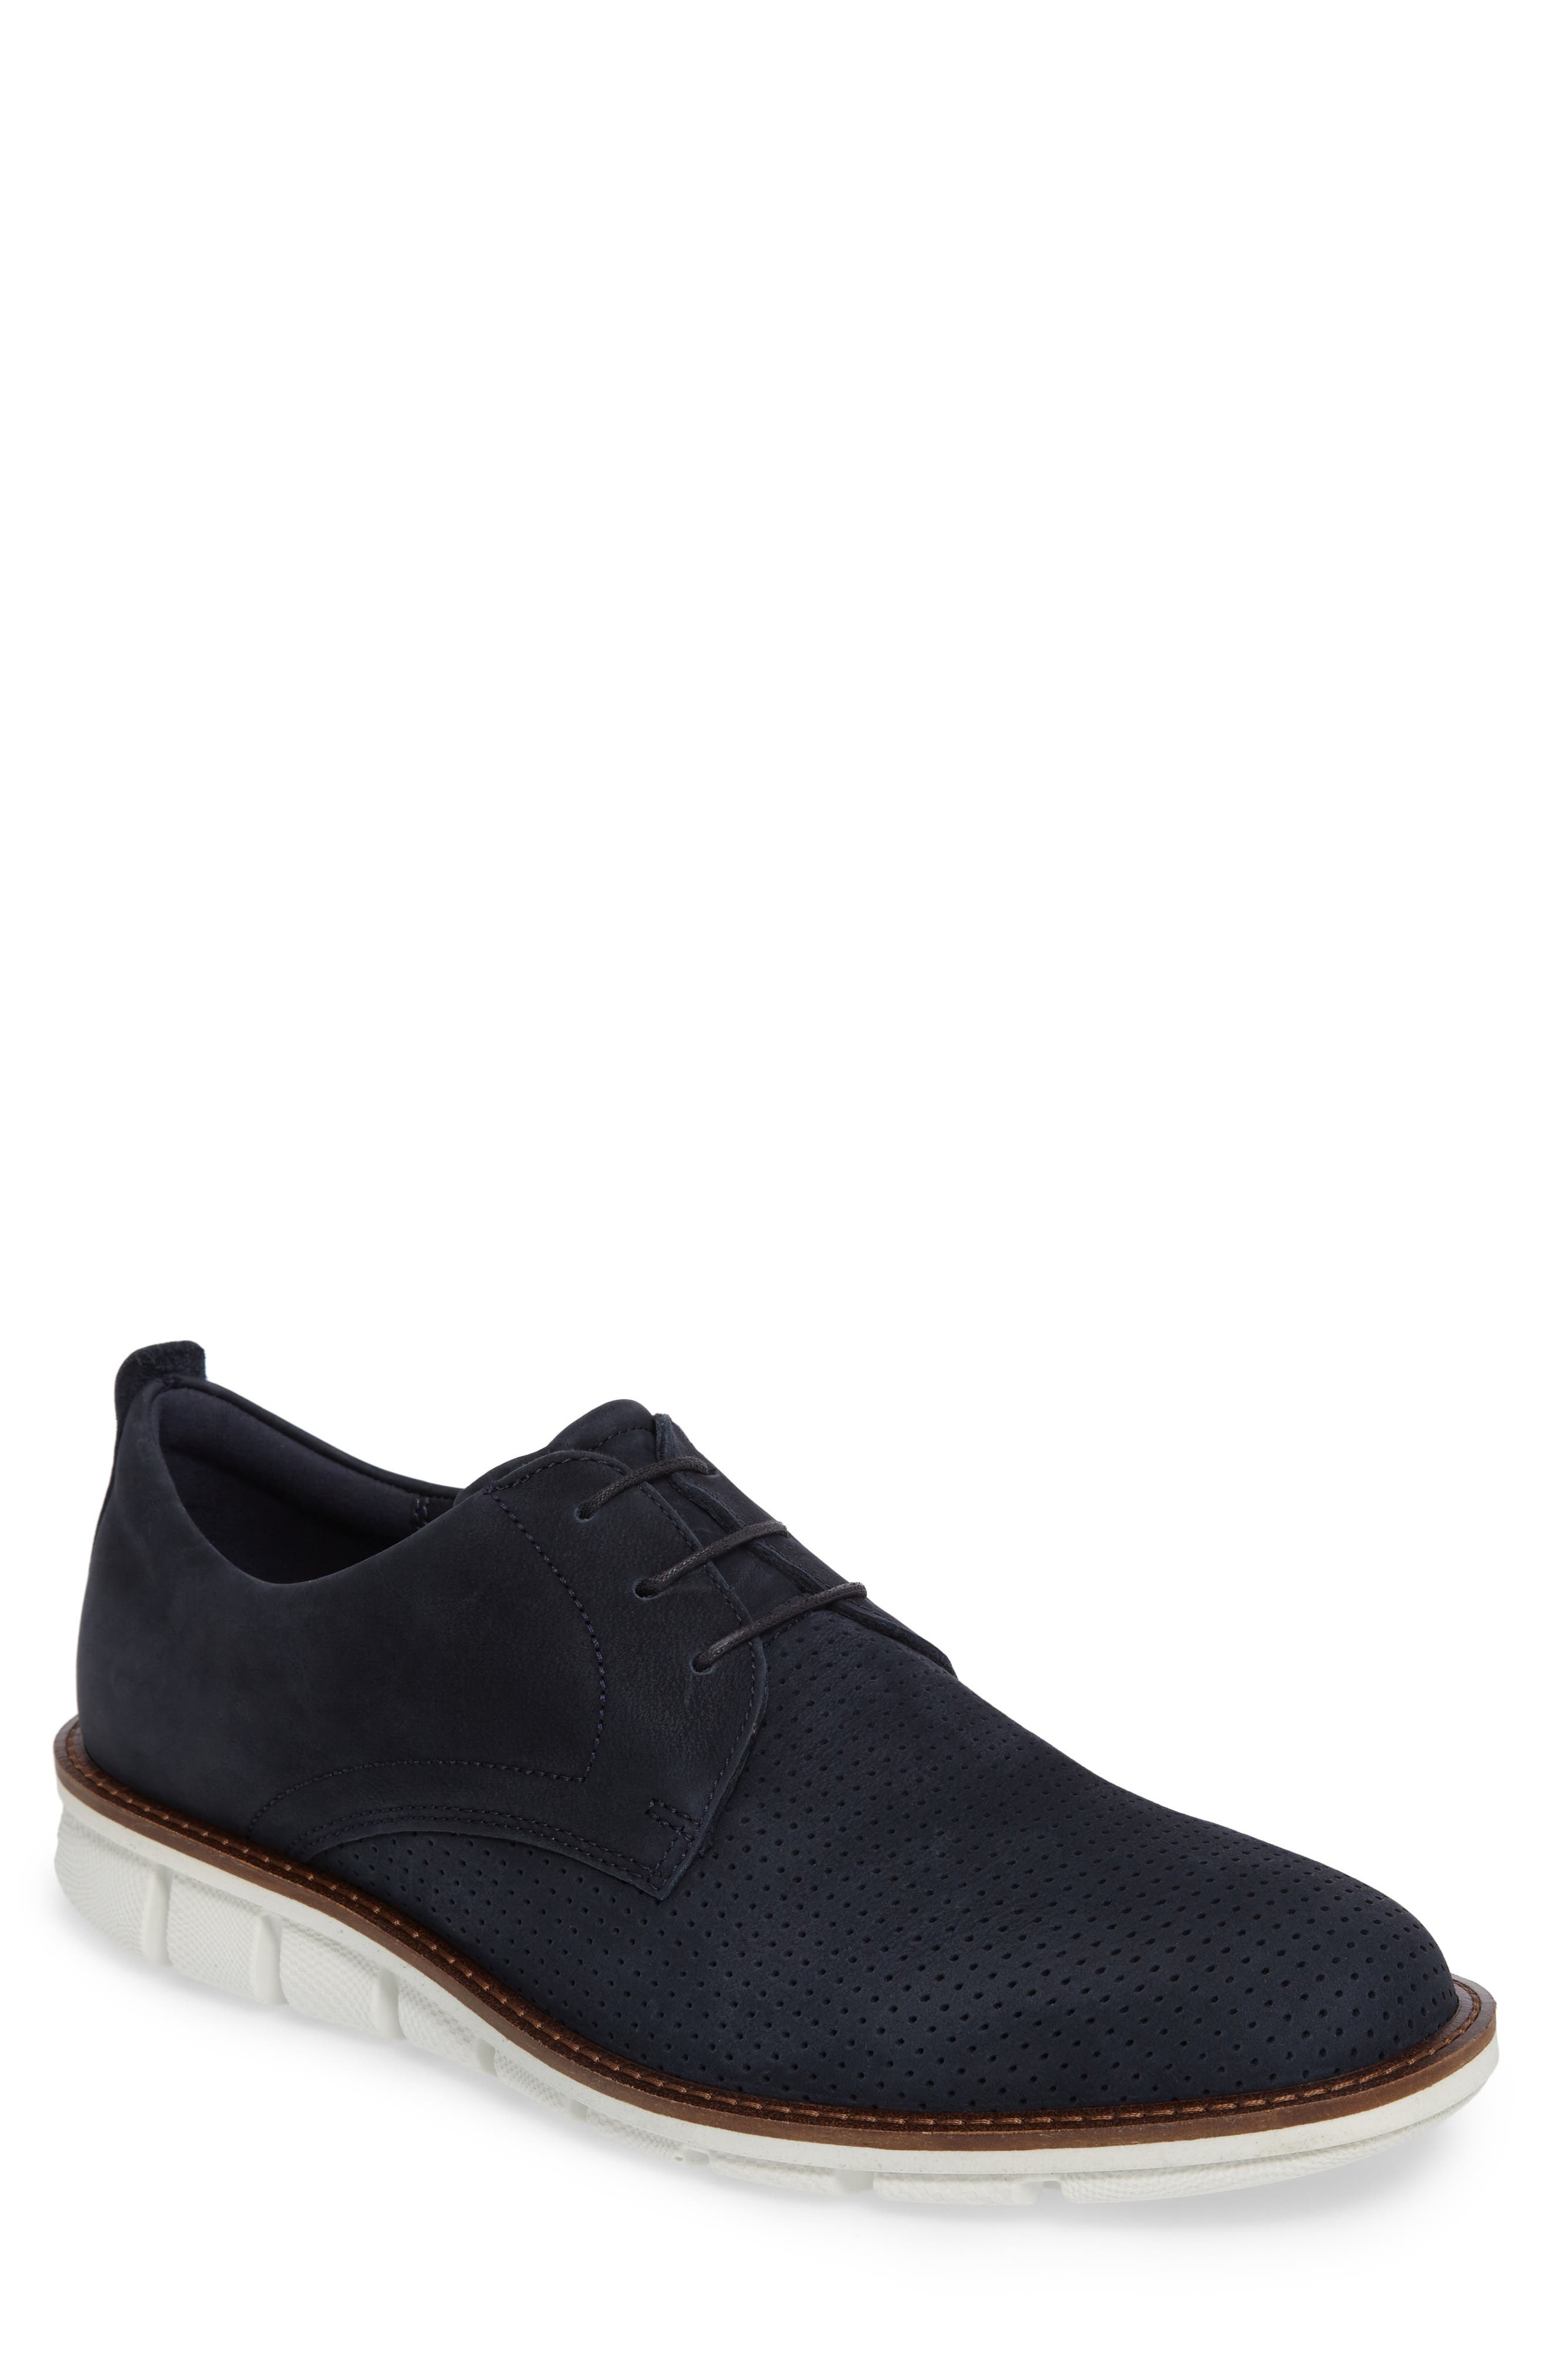 ECCO Jeremy Perforated Derby (Men)